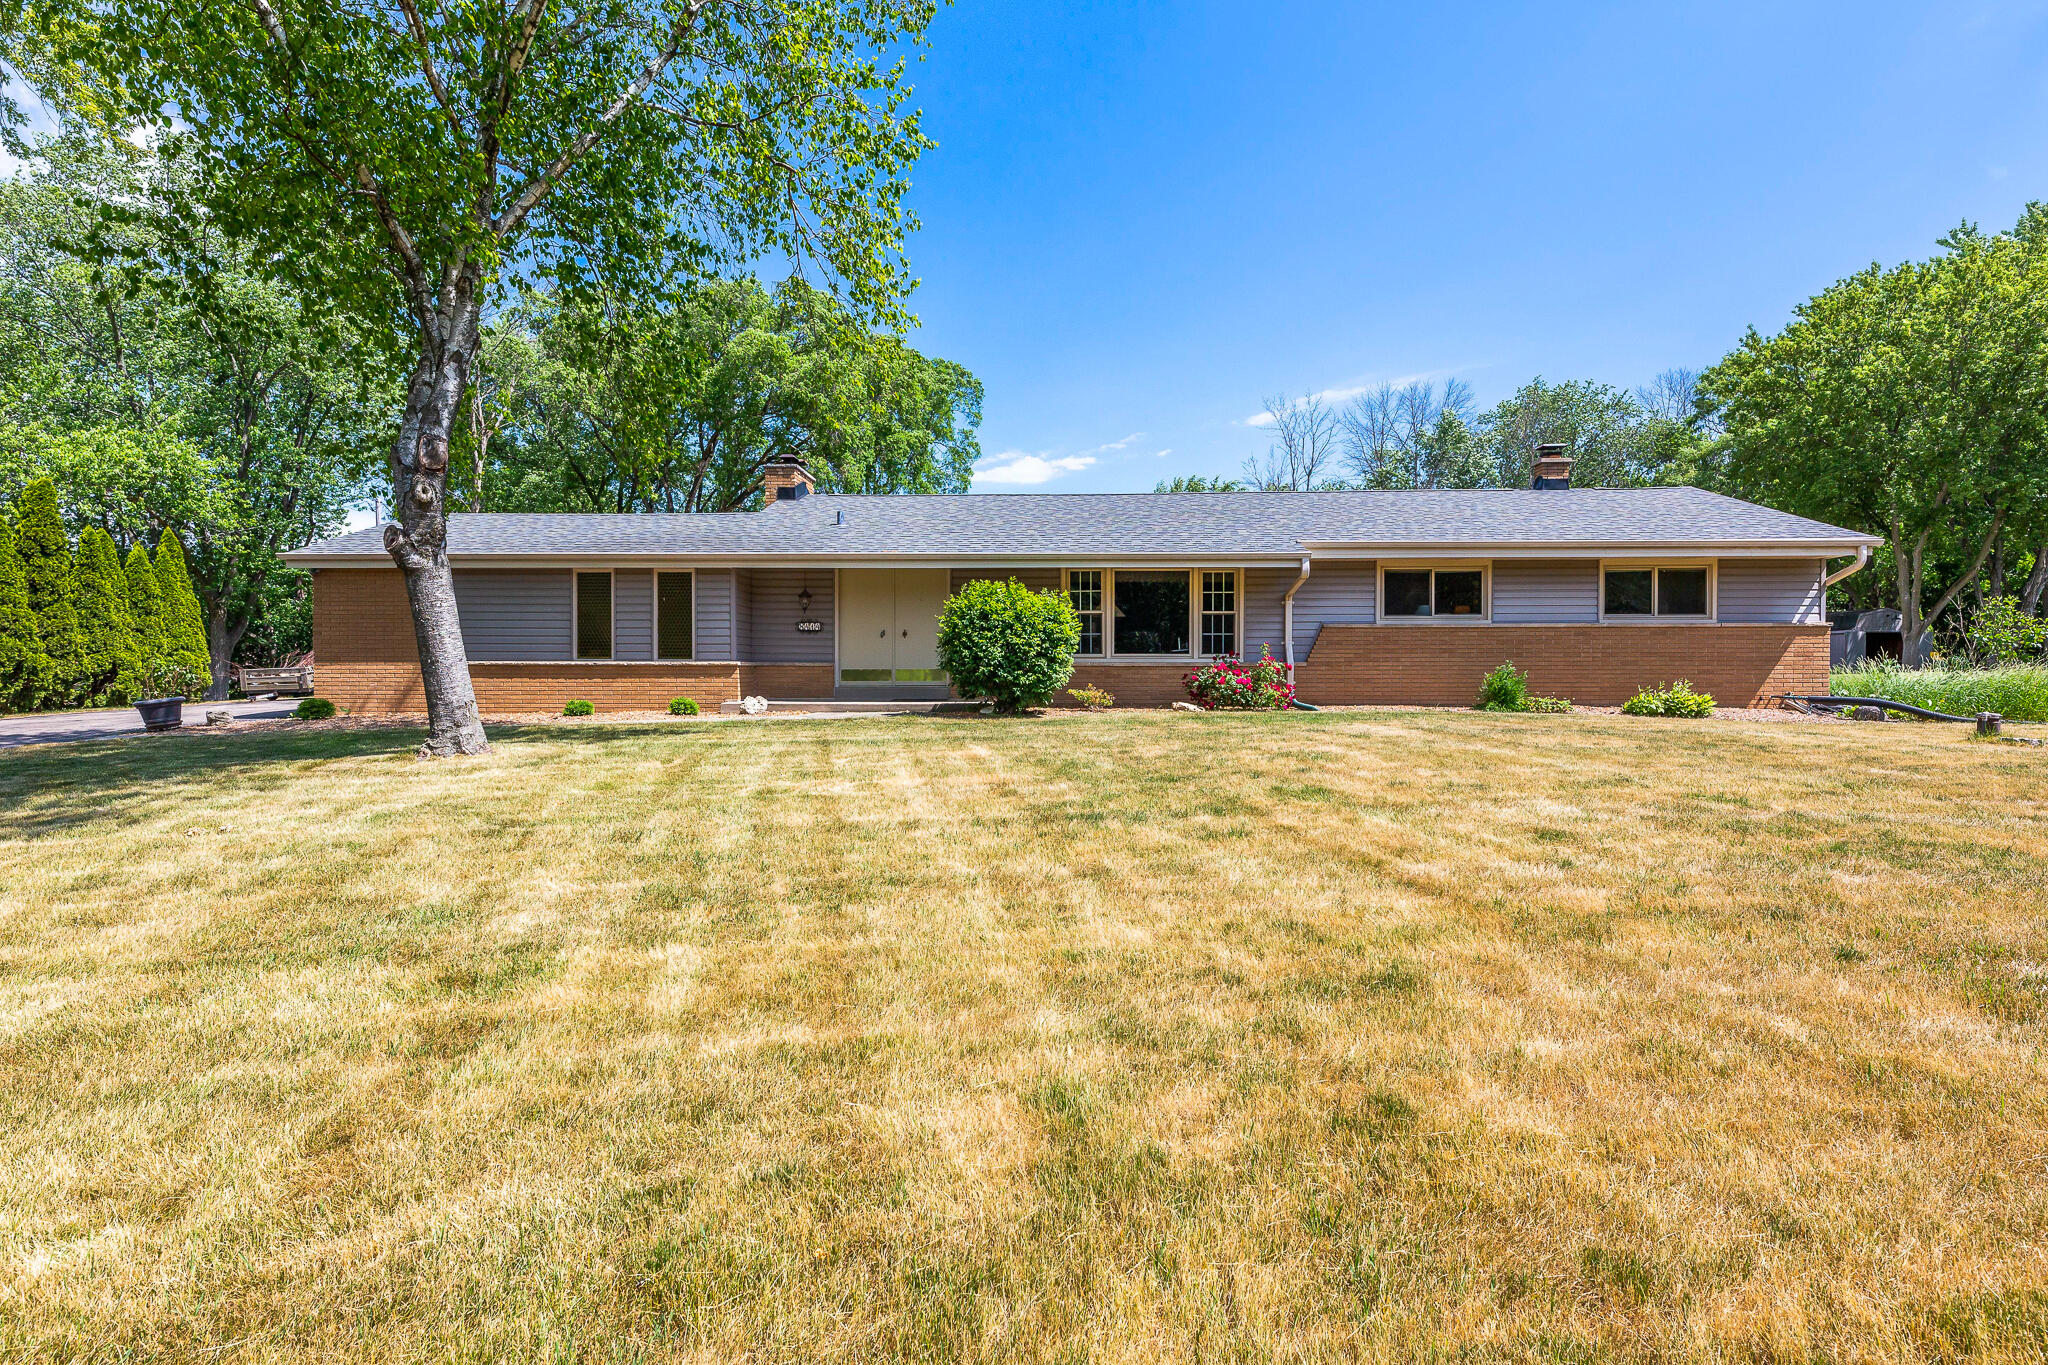 8414 W Hillview Dr Mequon, WI 53097 Property Image